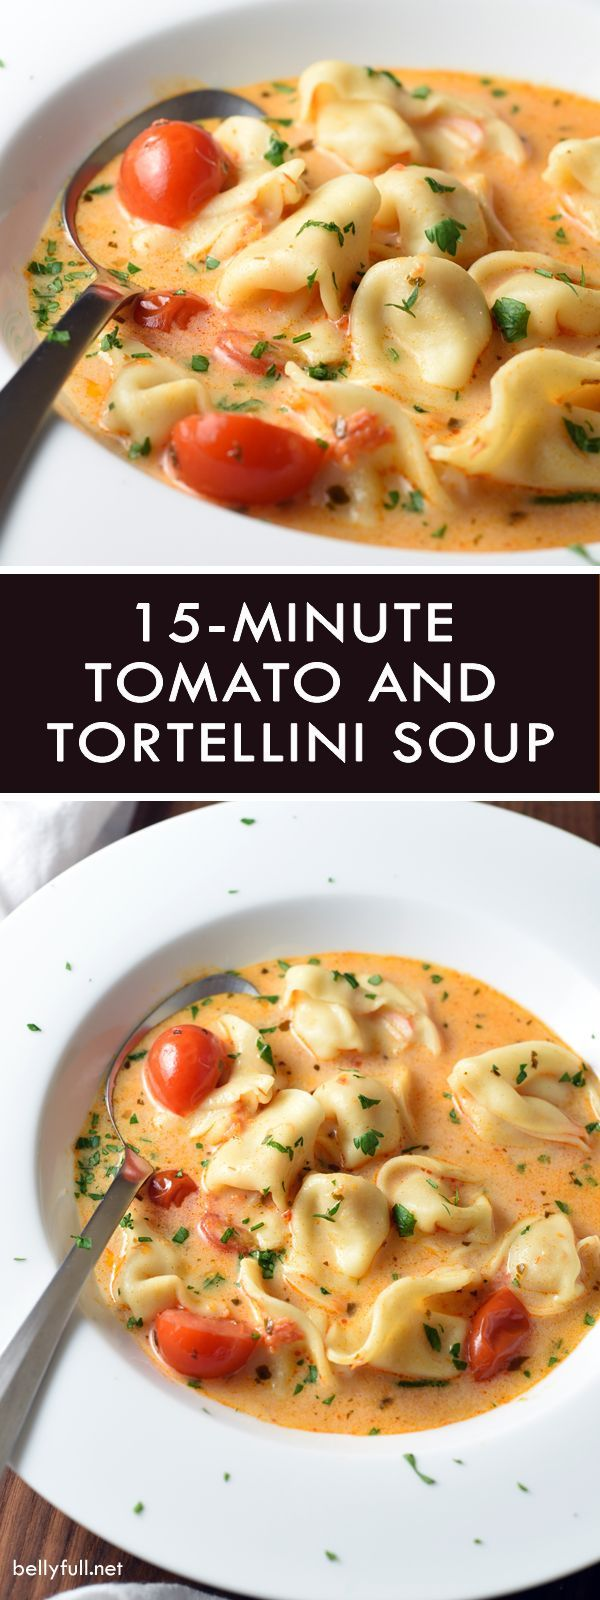 Super easy Tomato and Tortellini Soup that's ready in only 15 minutes! Such a lifesaver during those busy weeknights!